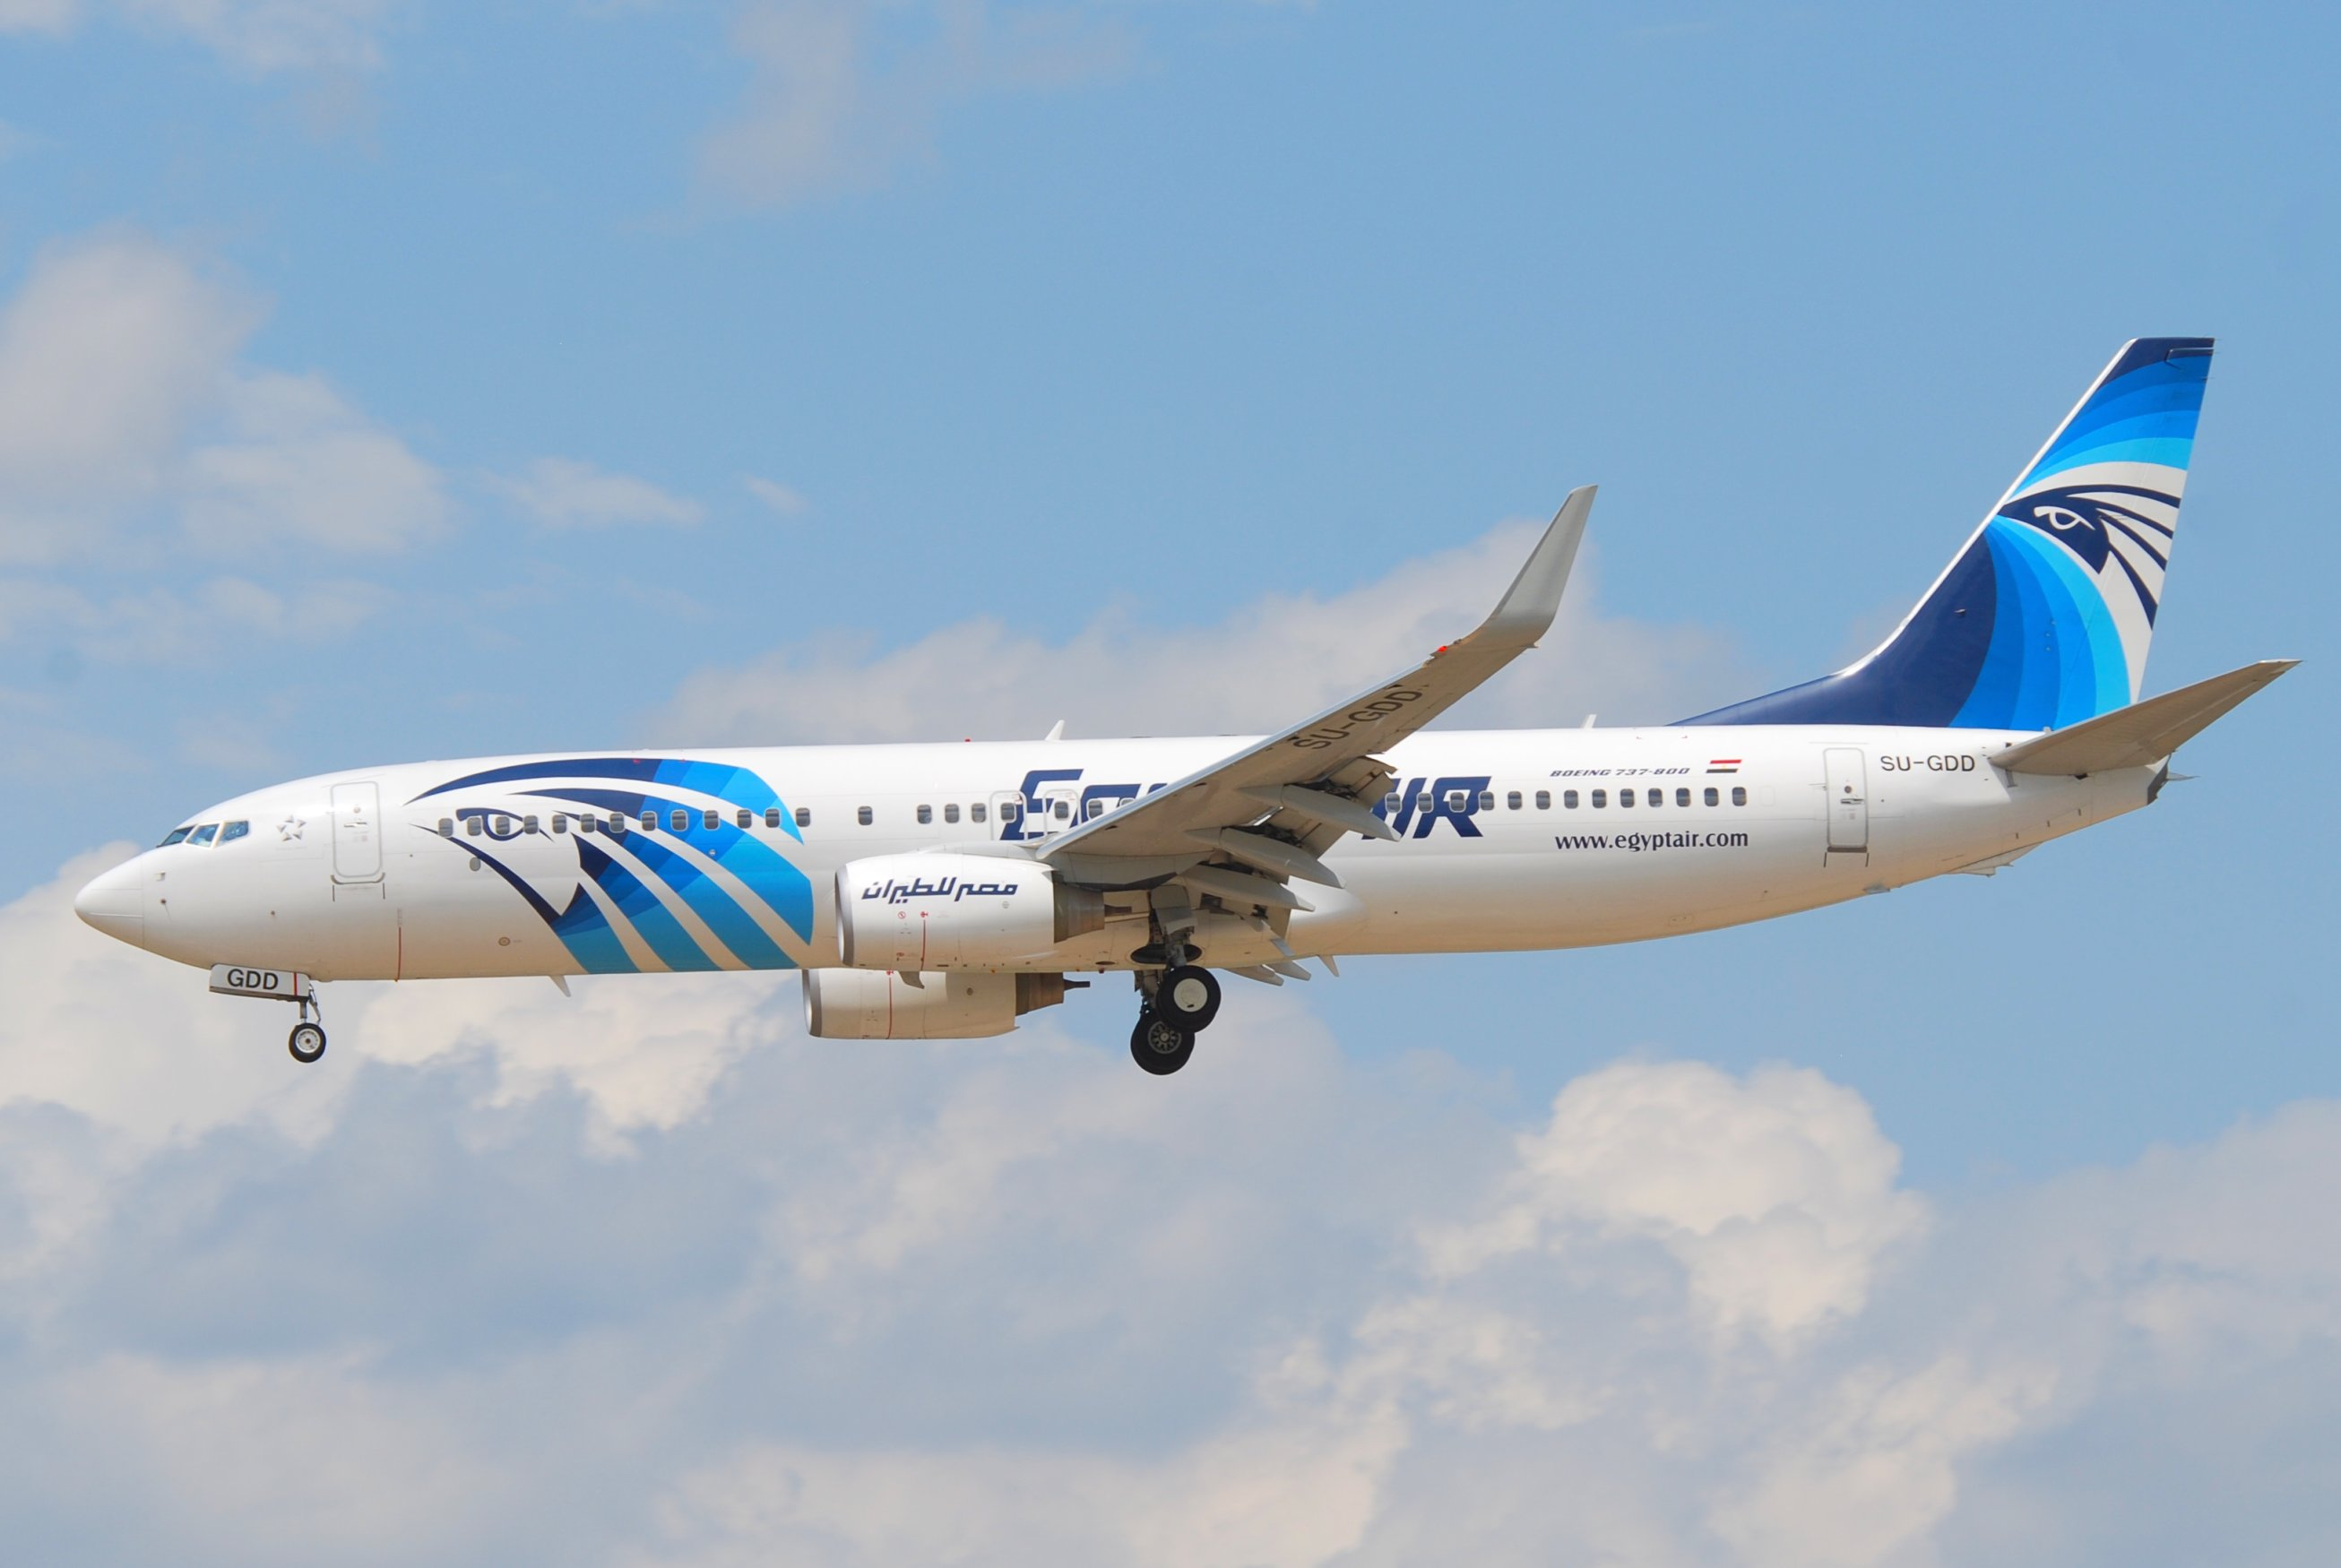 File:Egypt Air Boeing 737-866; [email protected];06.07